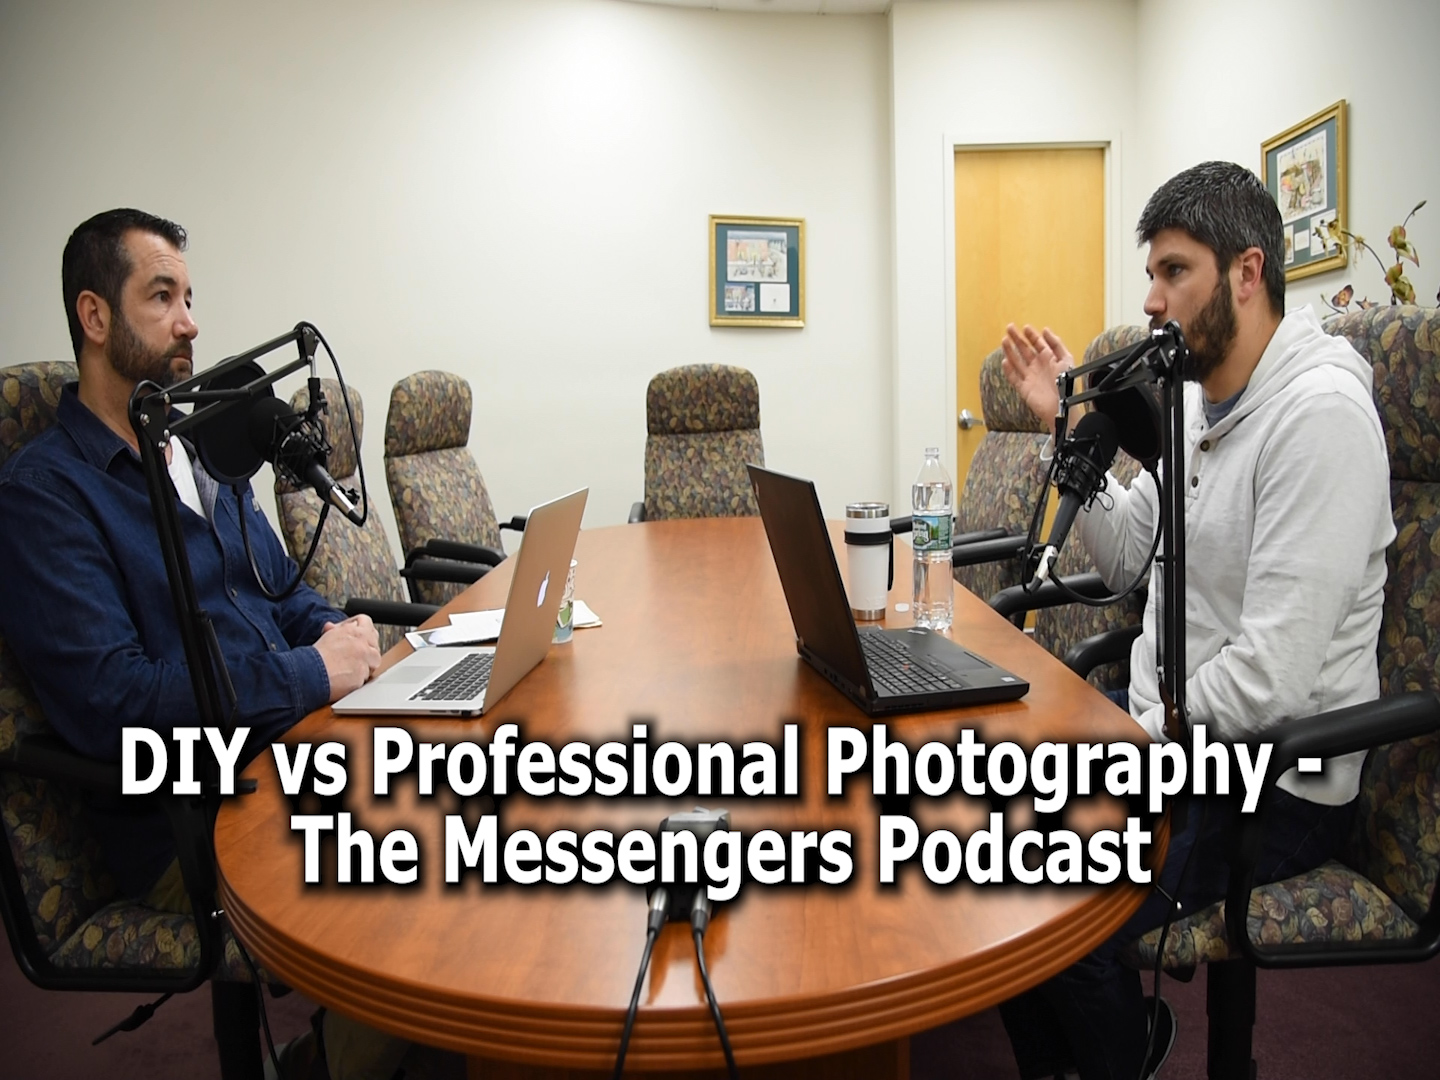 Should You Hire a Professional Photographer? - The Messengers